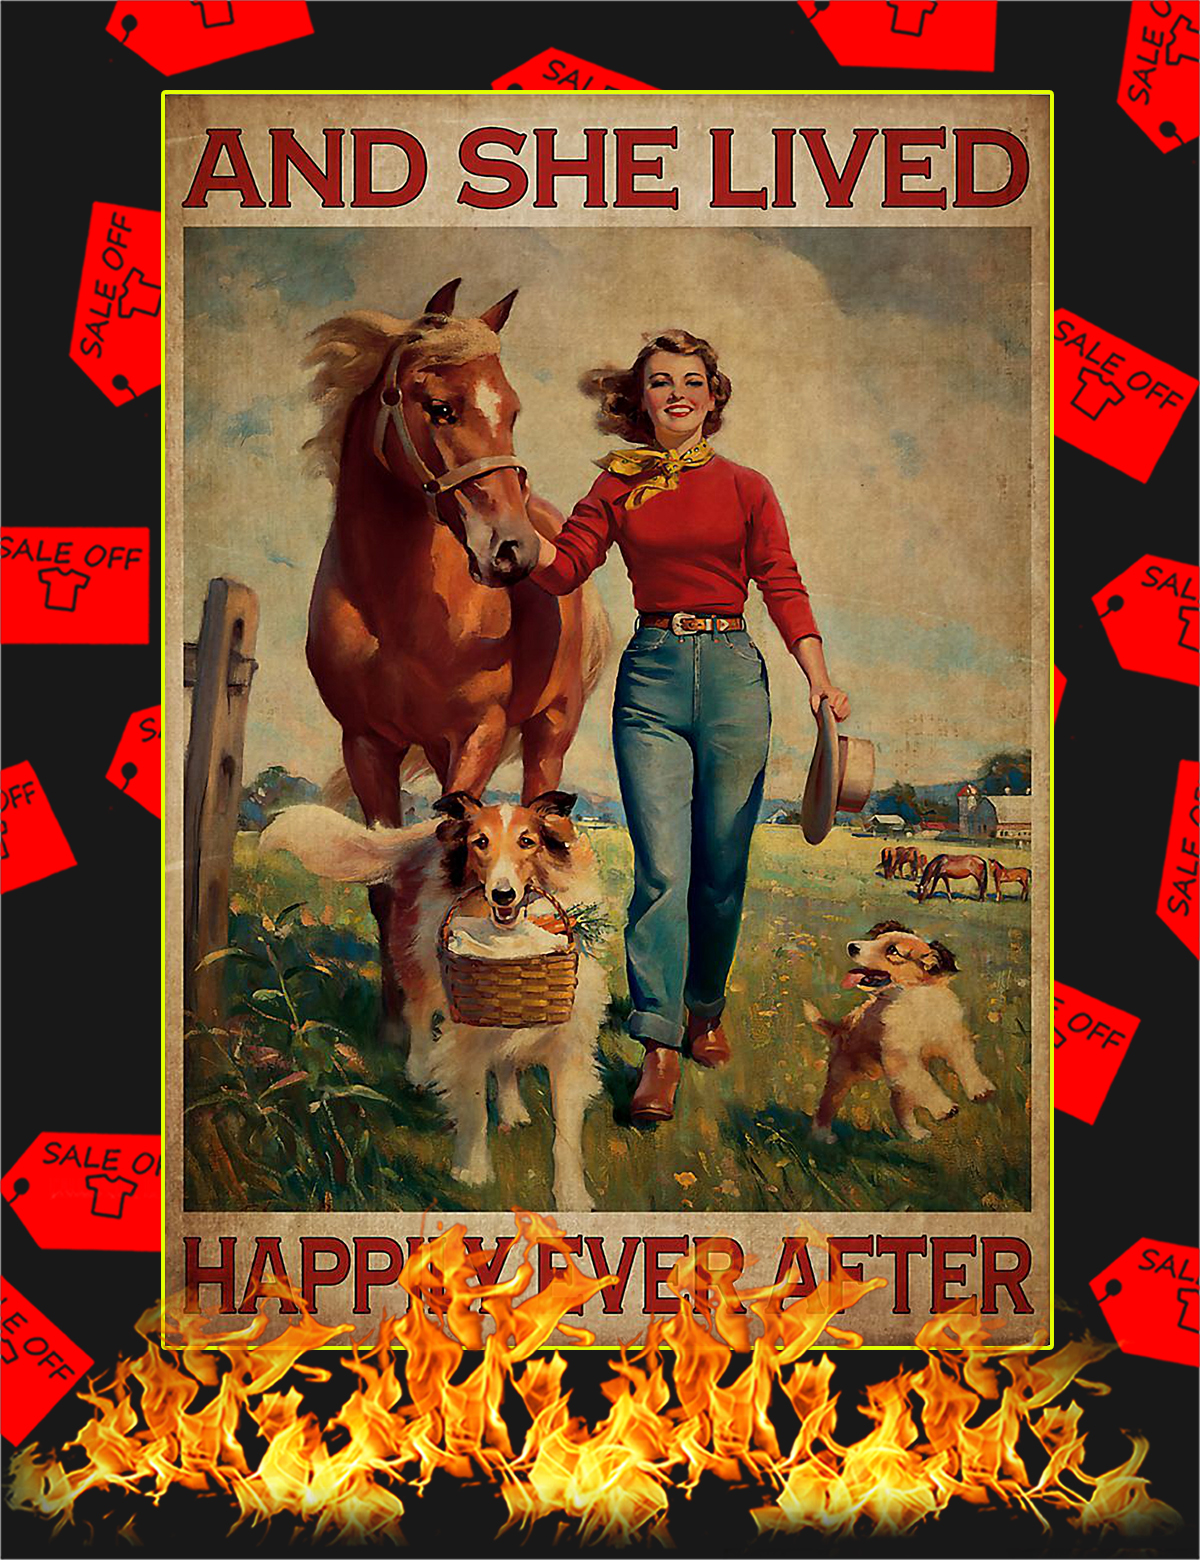 And she lived happily ever after horse and dog poster - A4